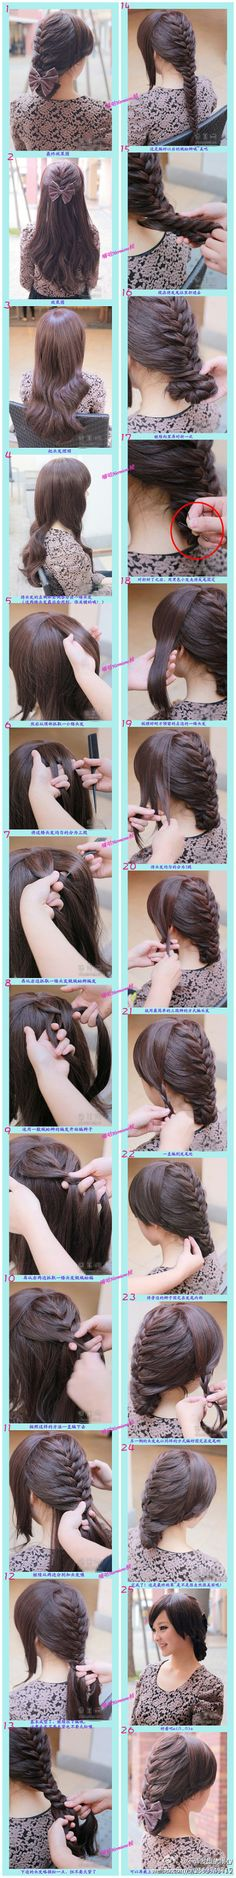 DIY braided hair plate made of high-definition picture tutorial Detailed